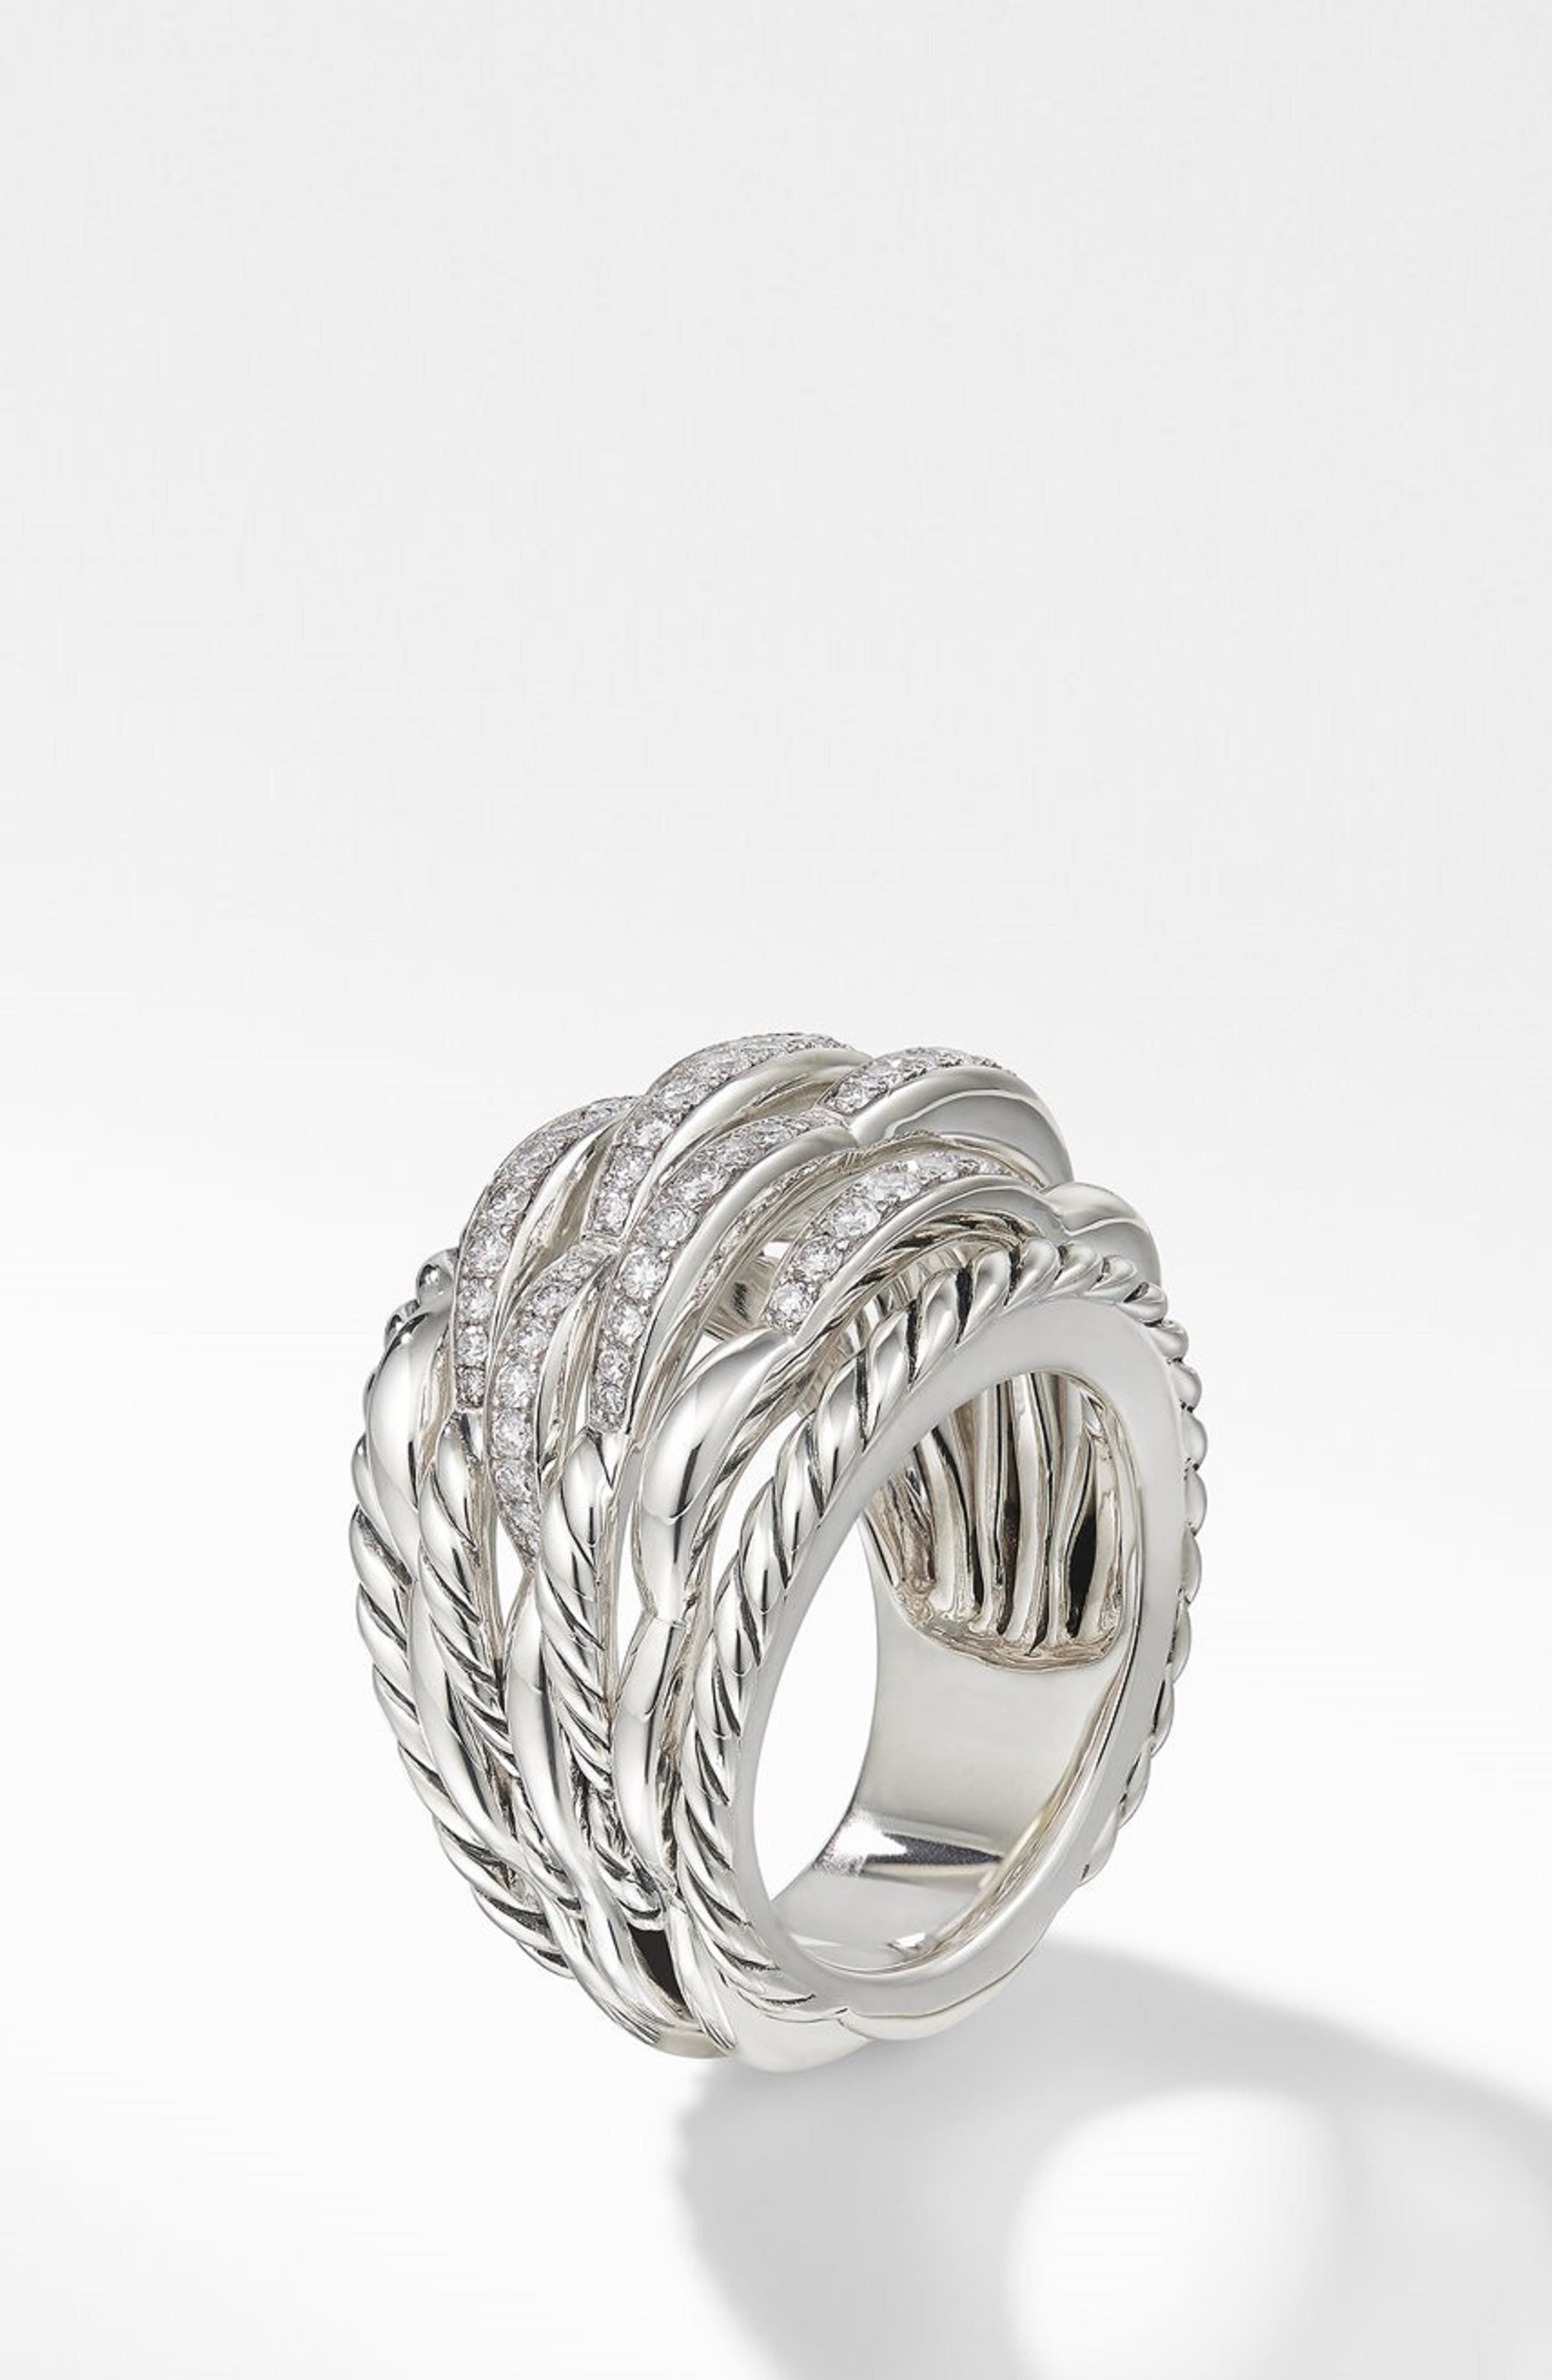 Tides 20mm Dome Ring with Diamonds,                             Alternate thumbnail 2, color,                             STERLING SILVER/ DIAMOND